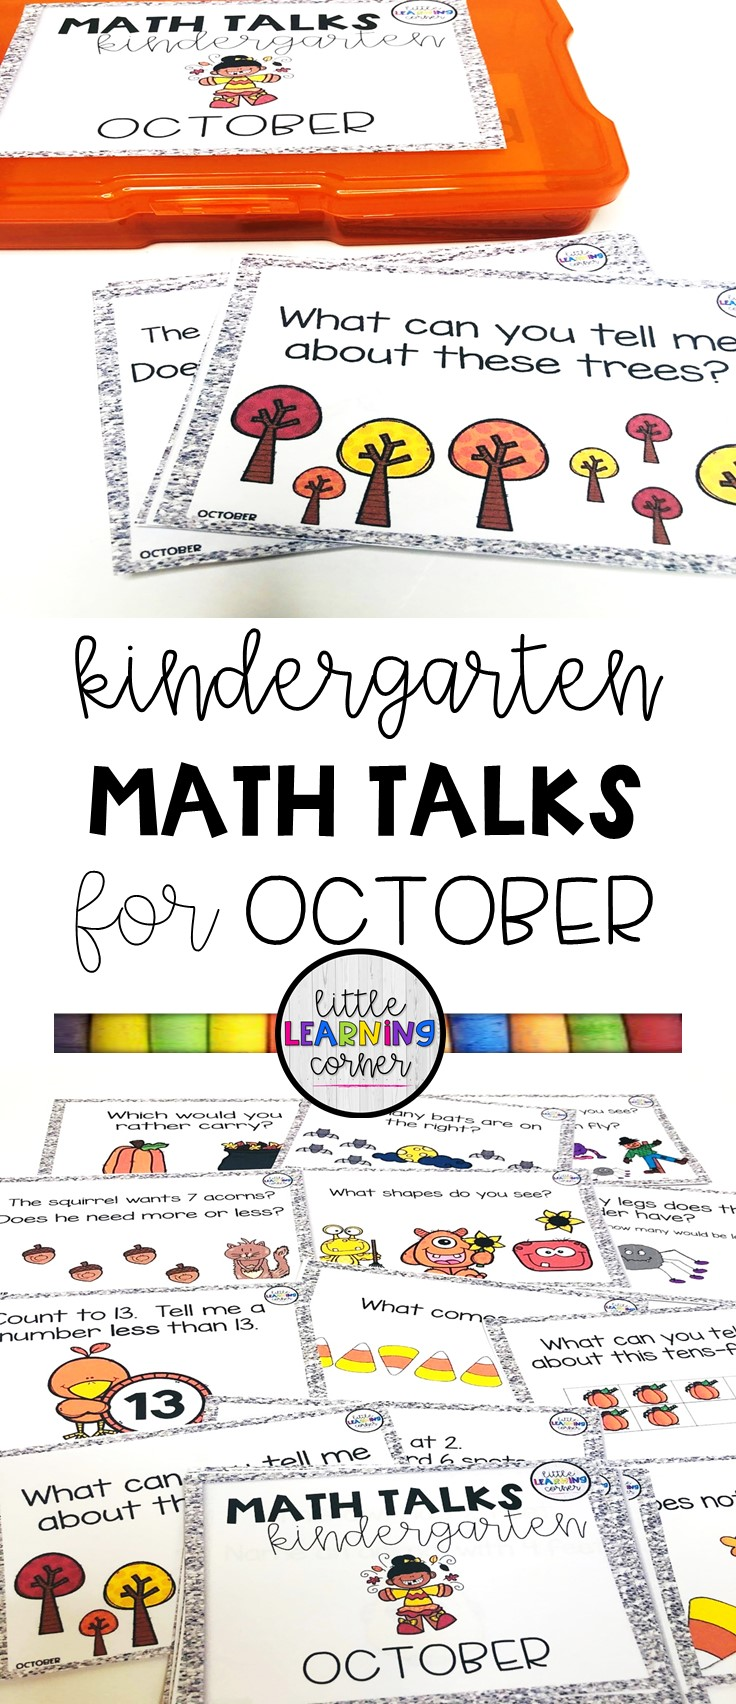 kindergarten-math-talks-october-pin